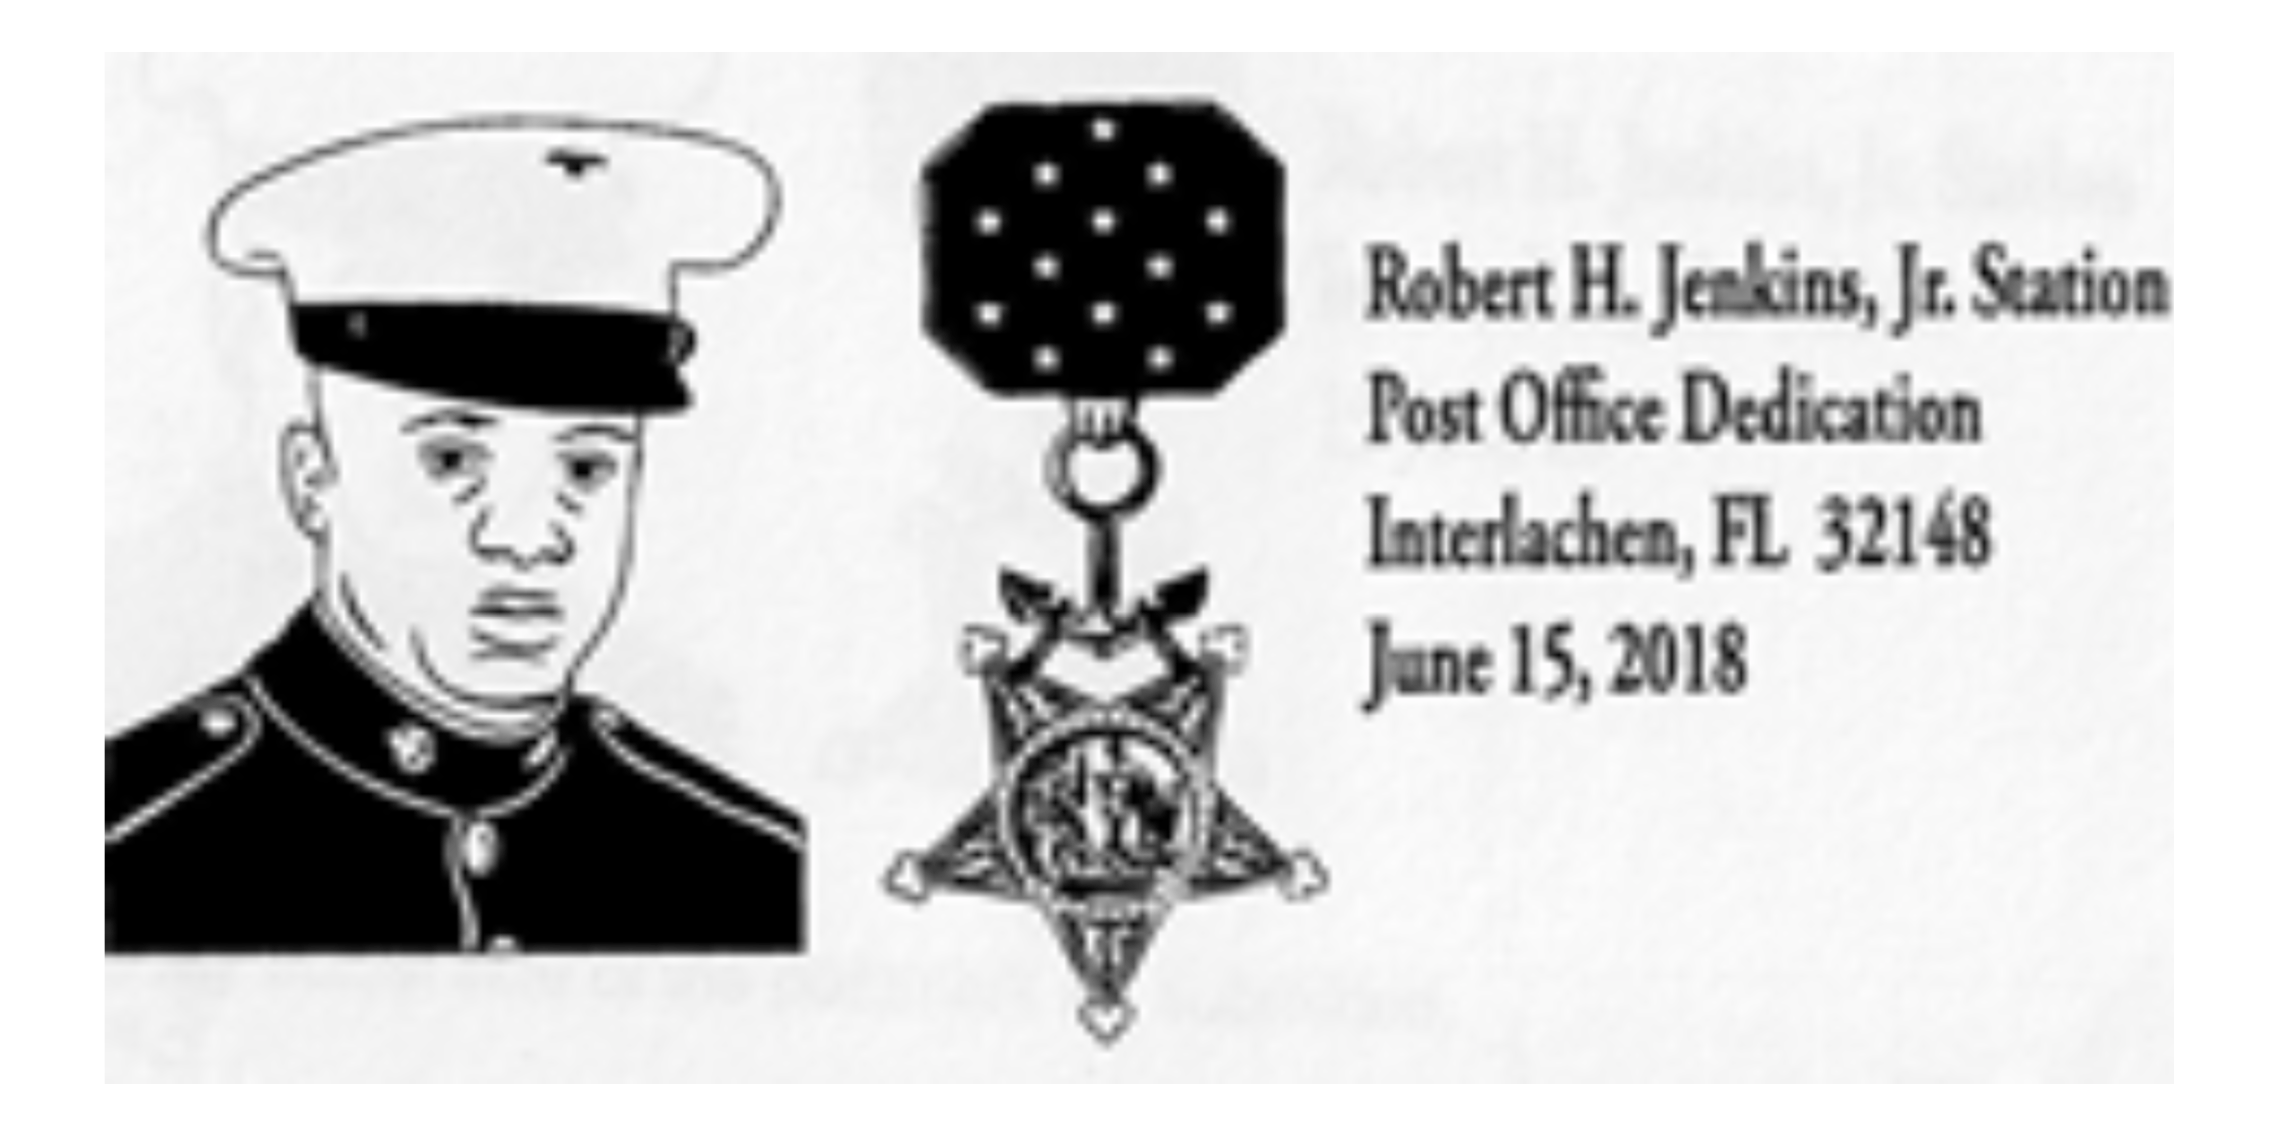 Robert H. Jenkins, Jr. Post Office Dedication, Interlachen